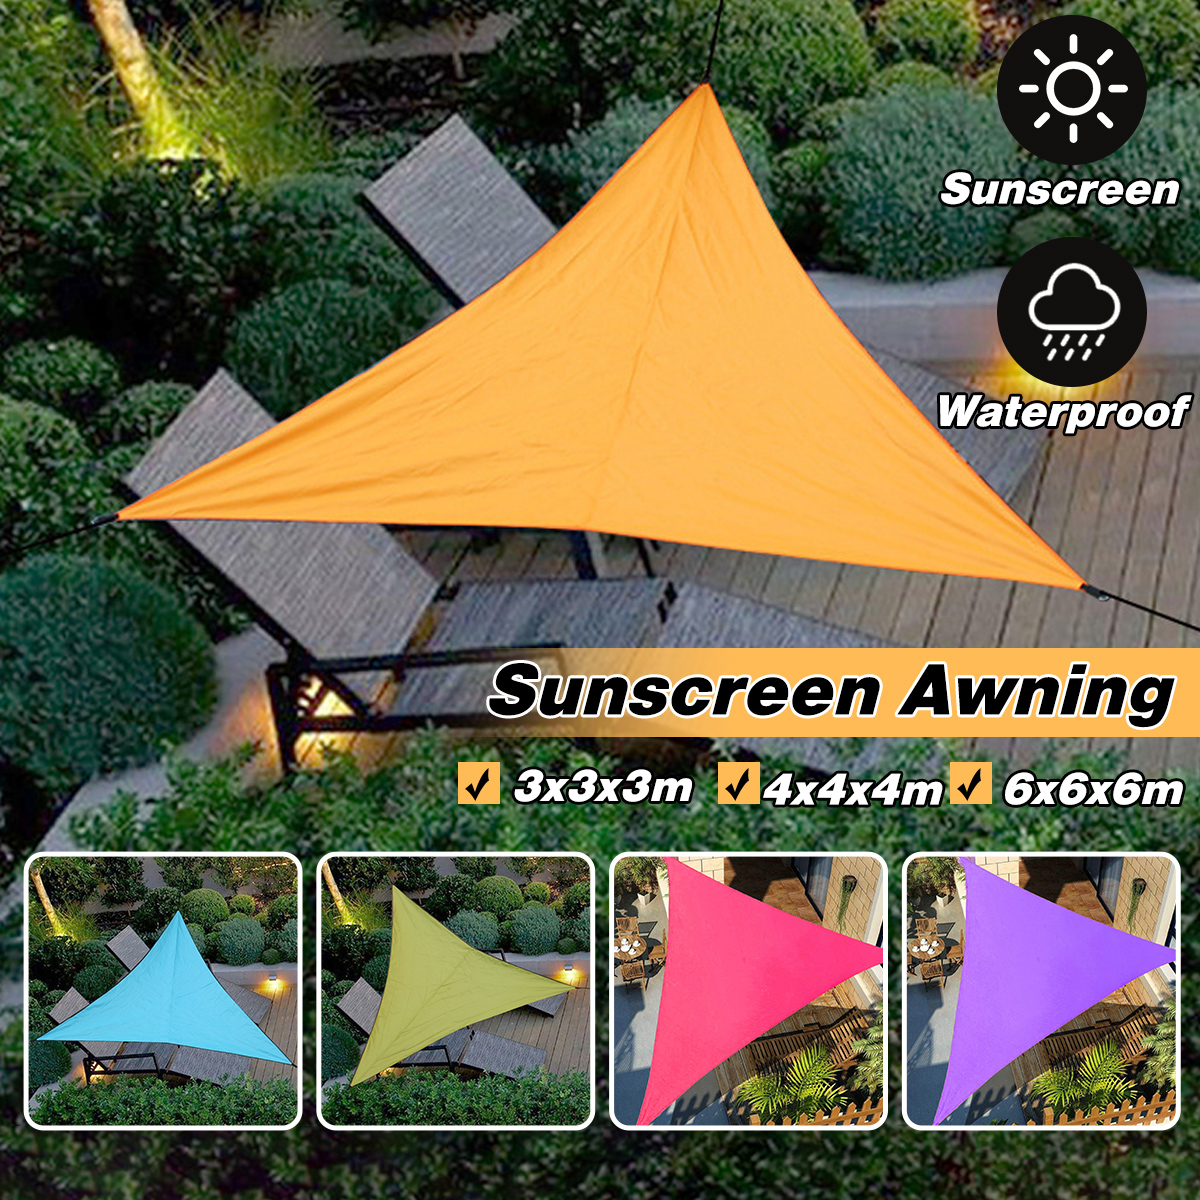 Heavy Shade Sail Sun Canopy Cover 3/4/6m <font><b>Outdoor</b></font> trilateral Garden Yard Awnings Waterproof <font><b>Car</b></font> Sunshade Cloth Summer image